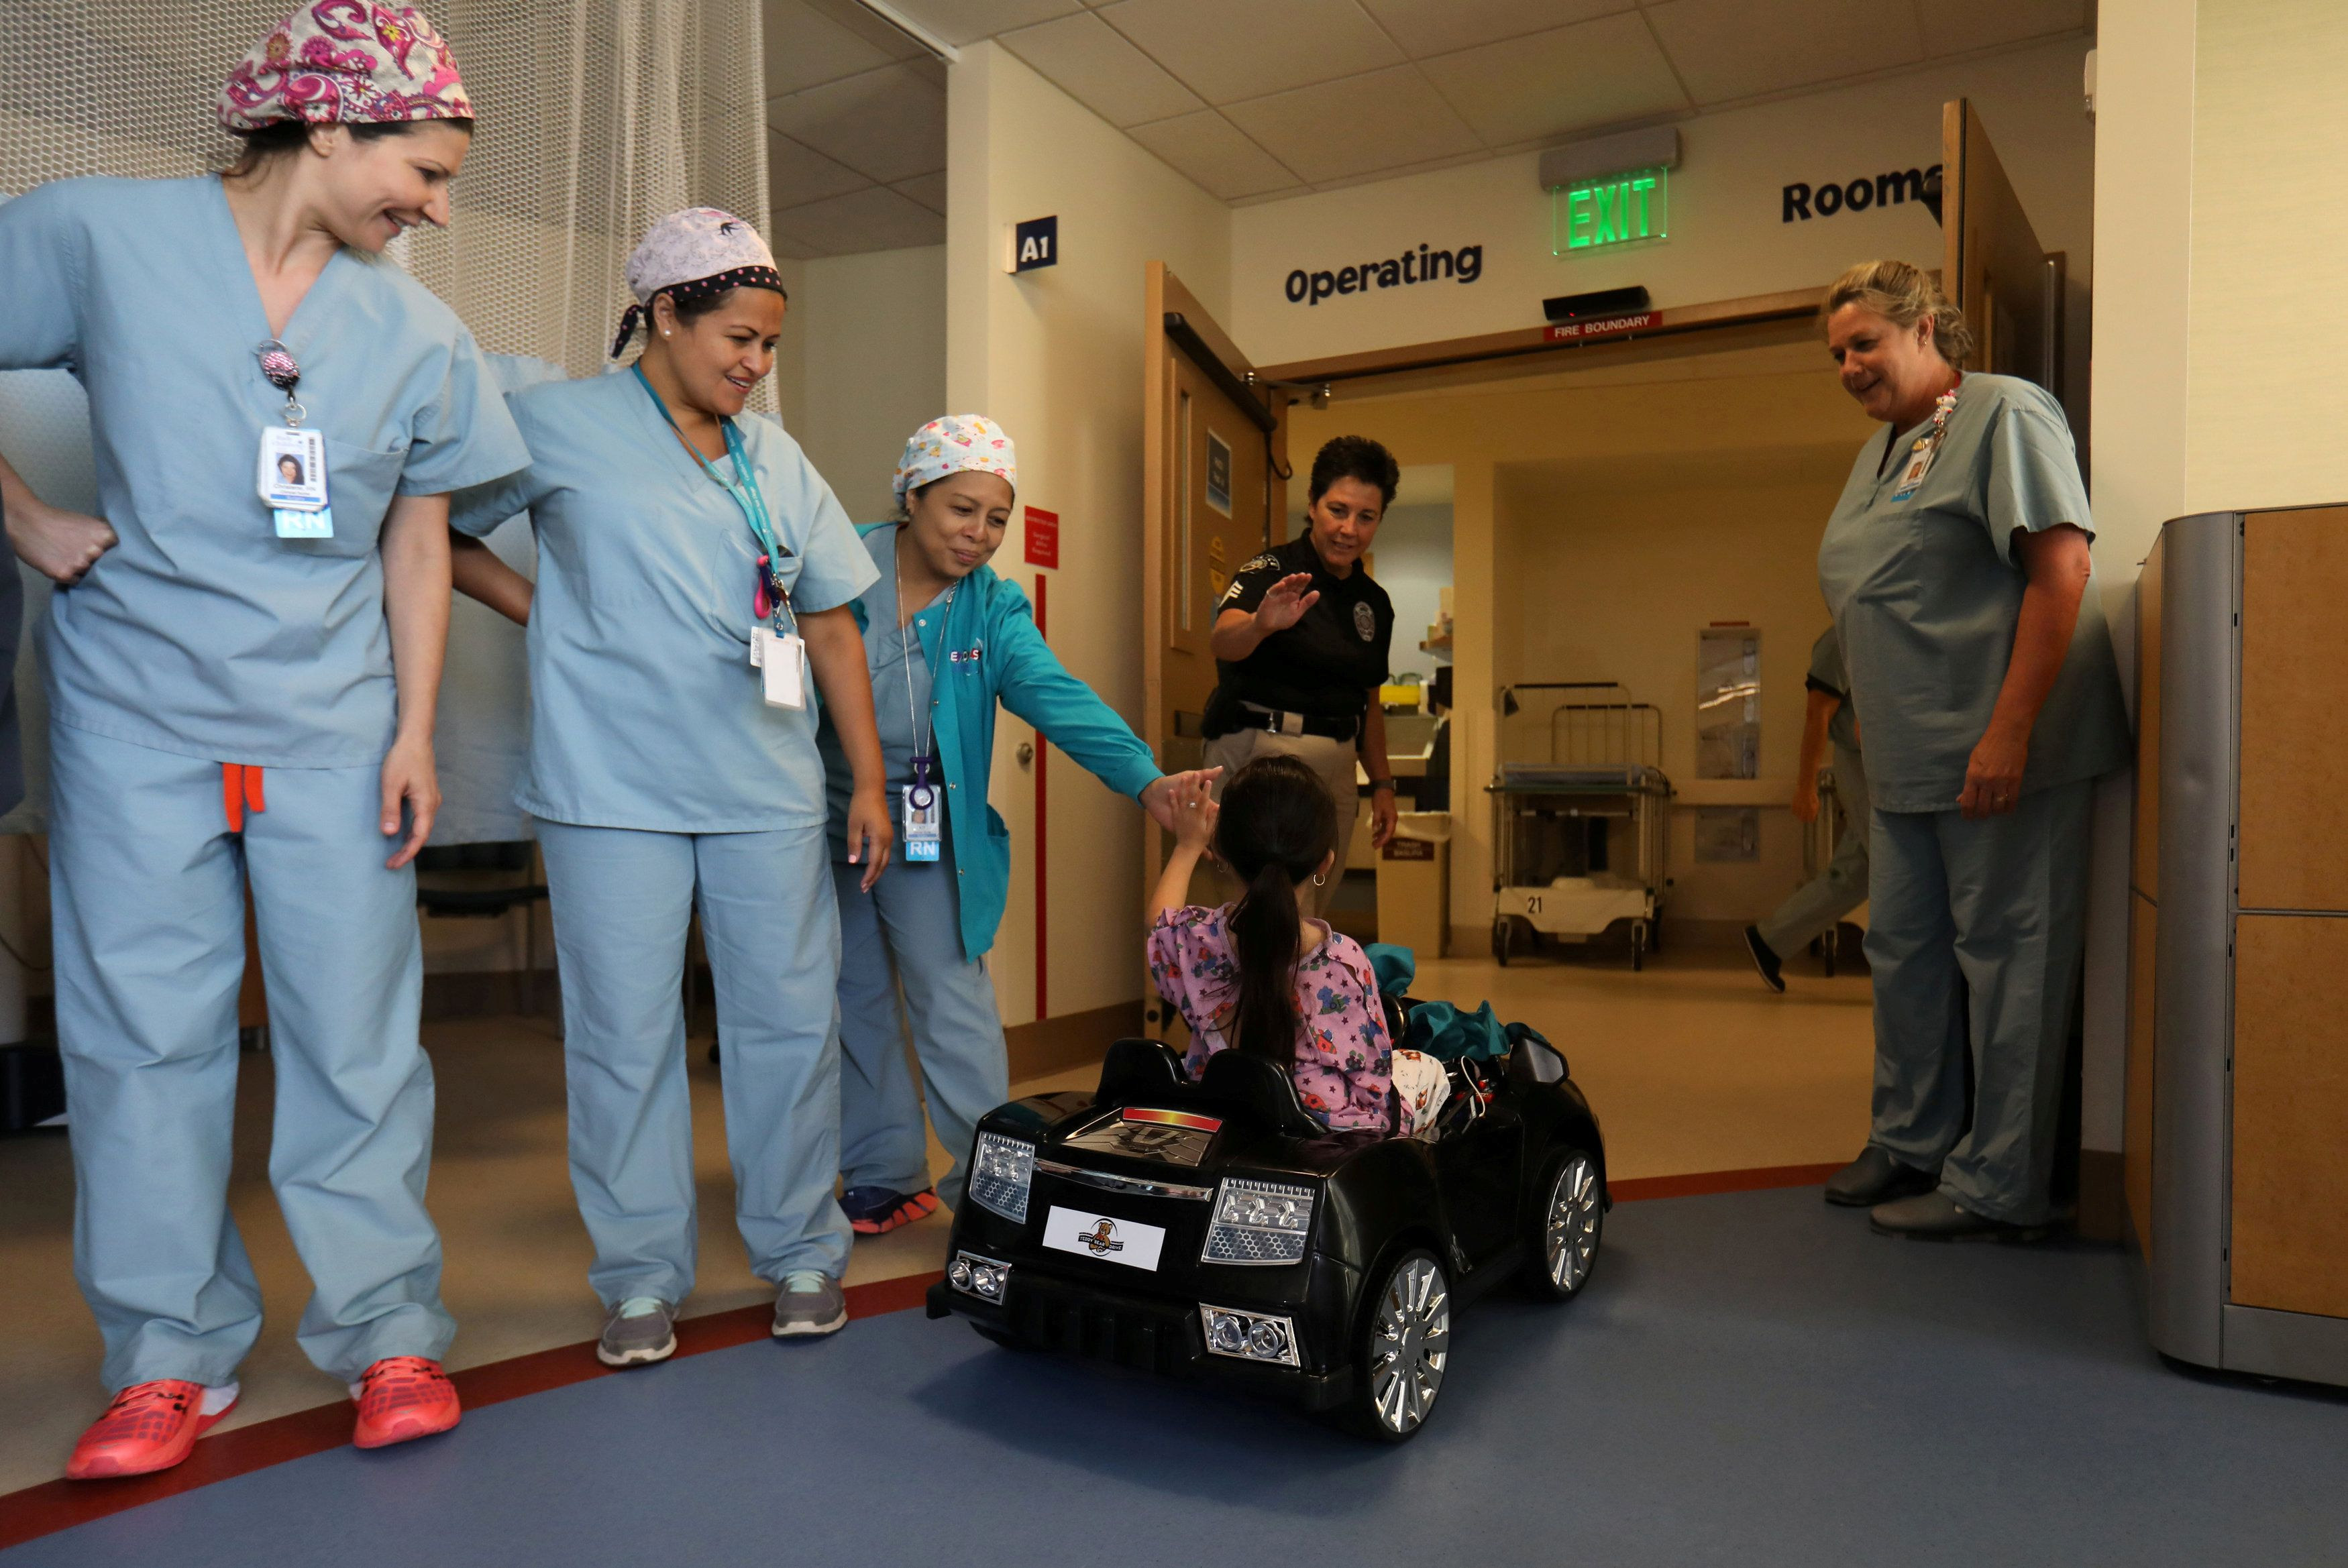 Andrea Destraio, 5, slaps hands with medical staff and invited police officers whose charity donated to Rady Children's Hospital to start a program that uses remote control cars to take young patients to the operating room, in San Diego, California, U.S. September 19, 2017.     REUTERS/Mike Blake     TPX IMAGES OF THE DAY